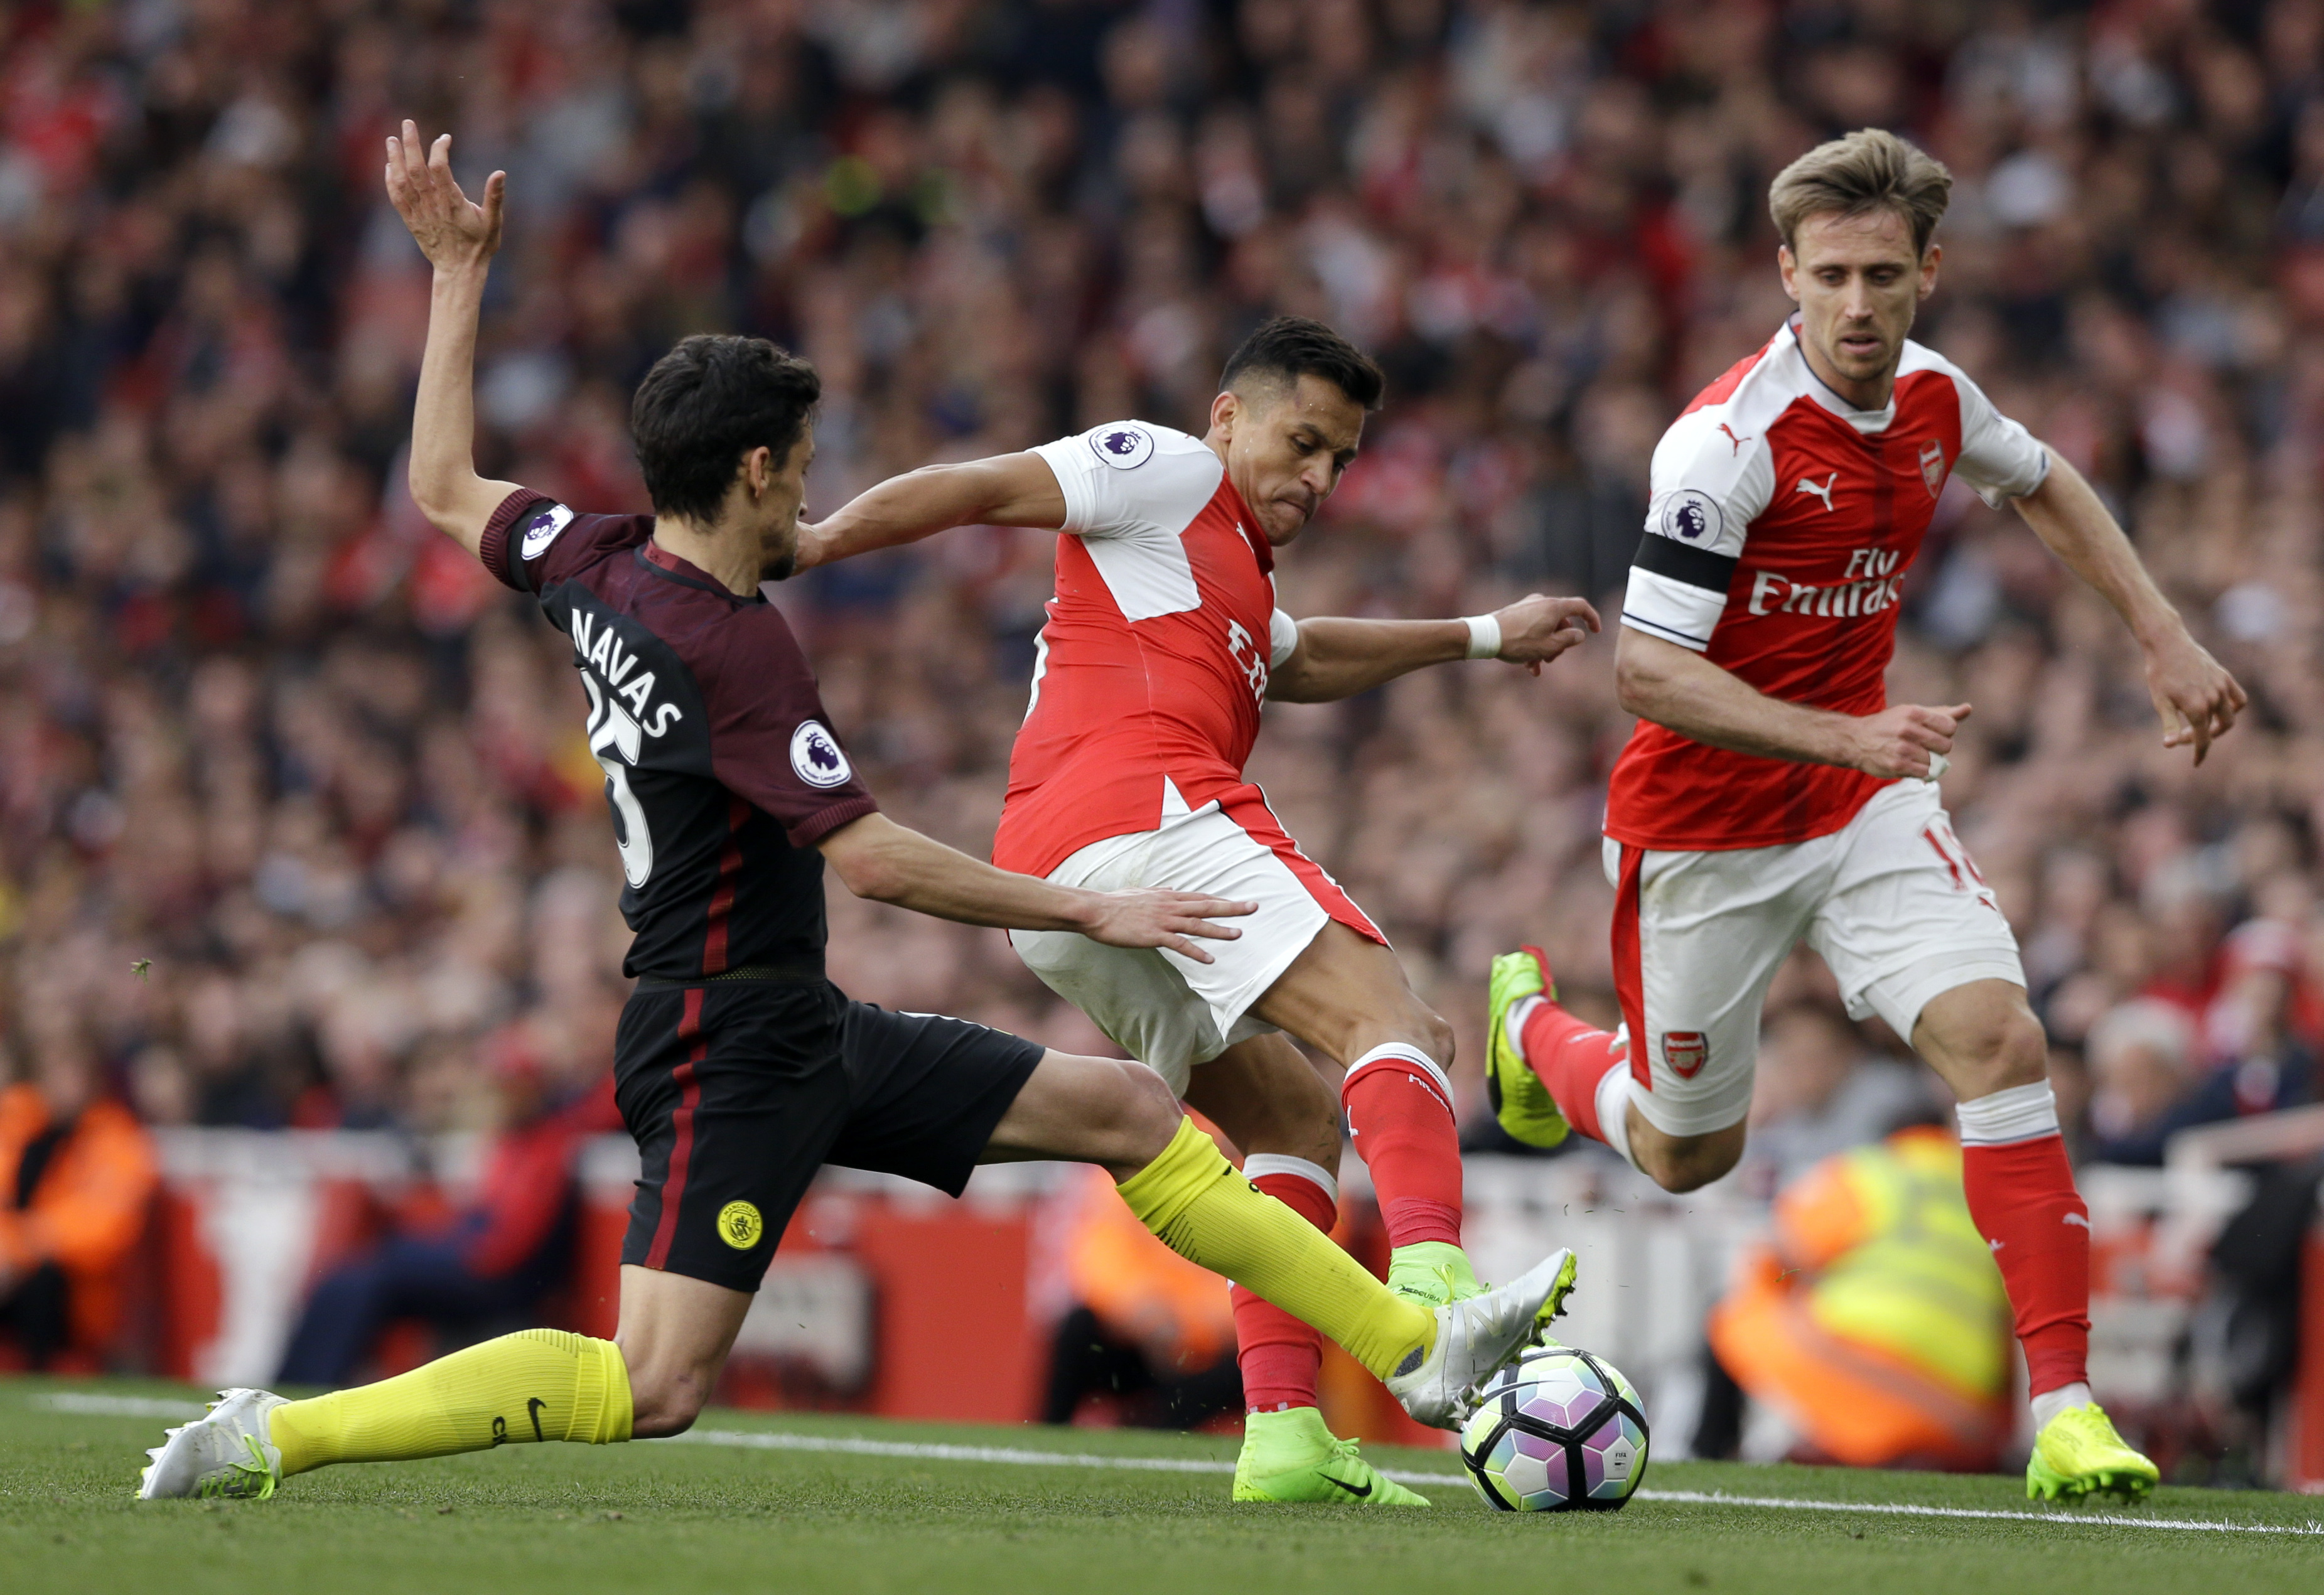 Manchester City's Jesus Navas, left, fights for the ball with Arsenal's Alexis Sanchez during their teams' English Premier League match at the Emirates stadium in London, Sunday, April 2. (AP Photo/Alastair Grant)